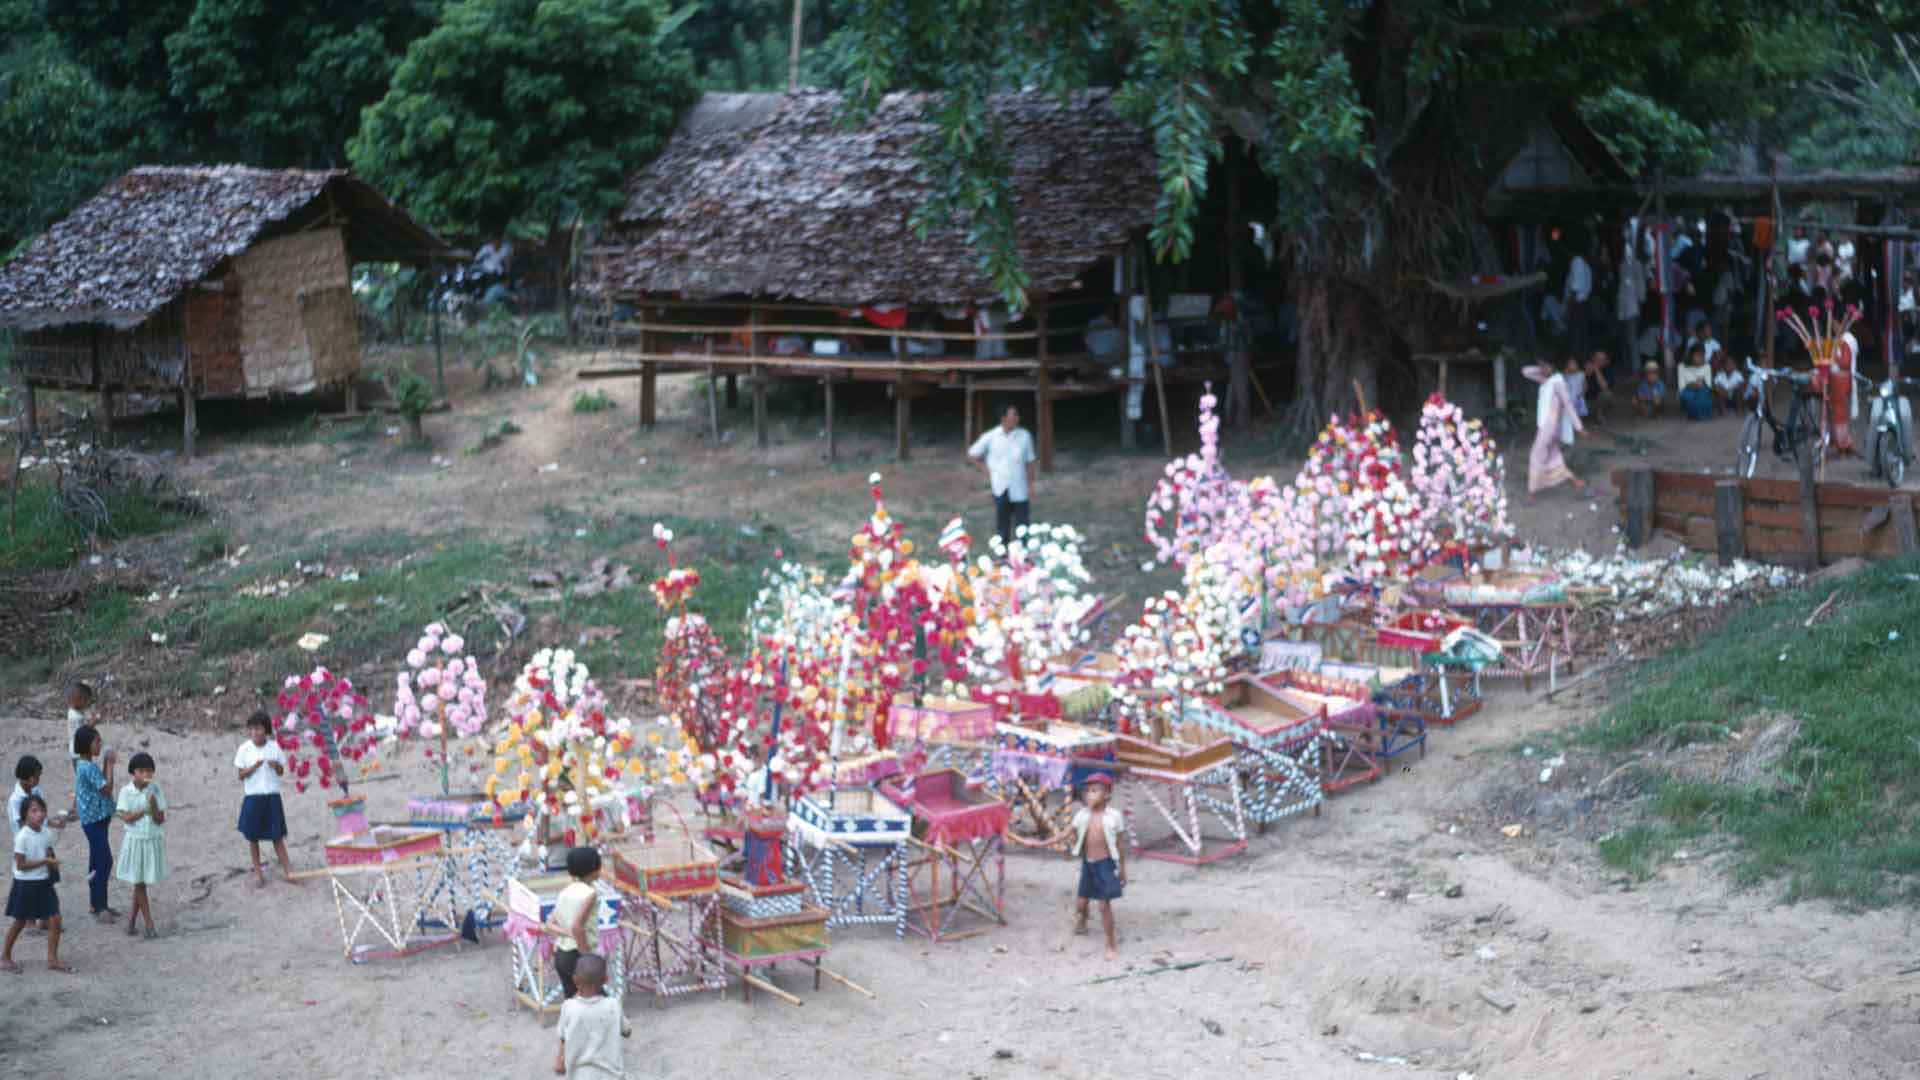 Dozens of processional float-like gifts line the beach